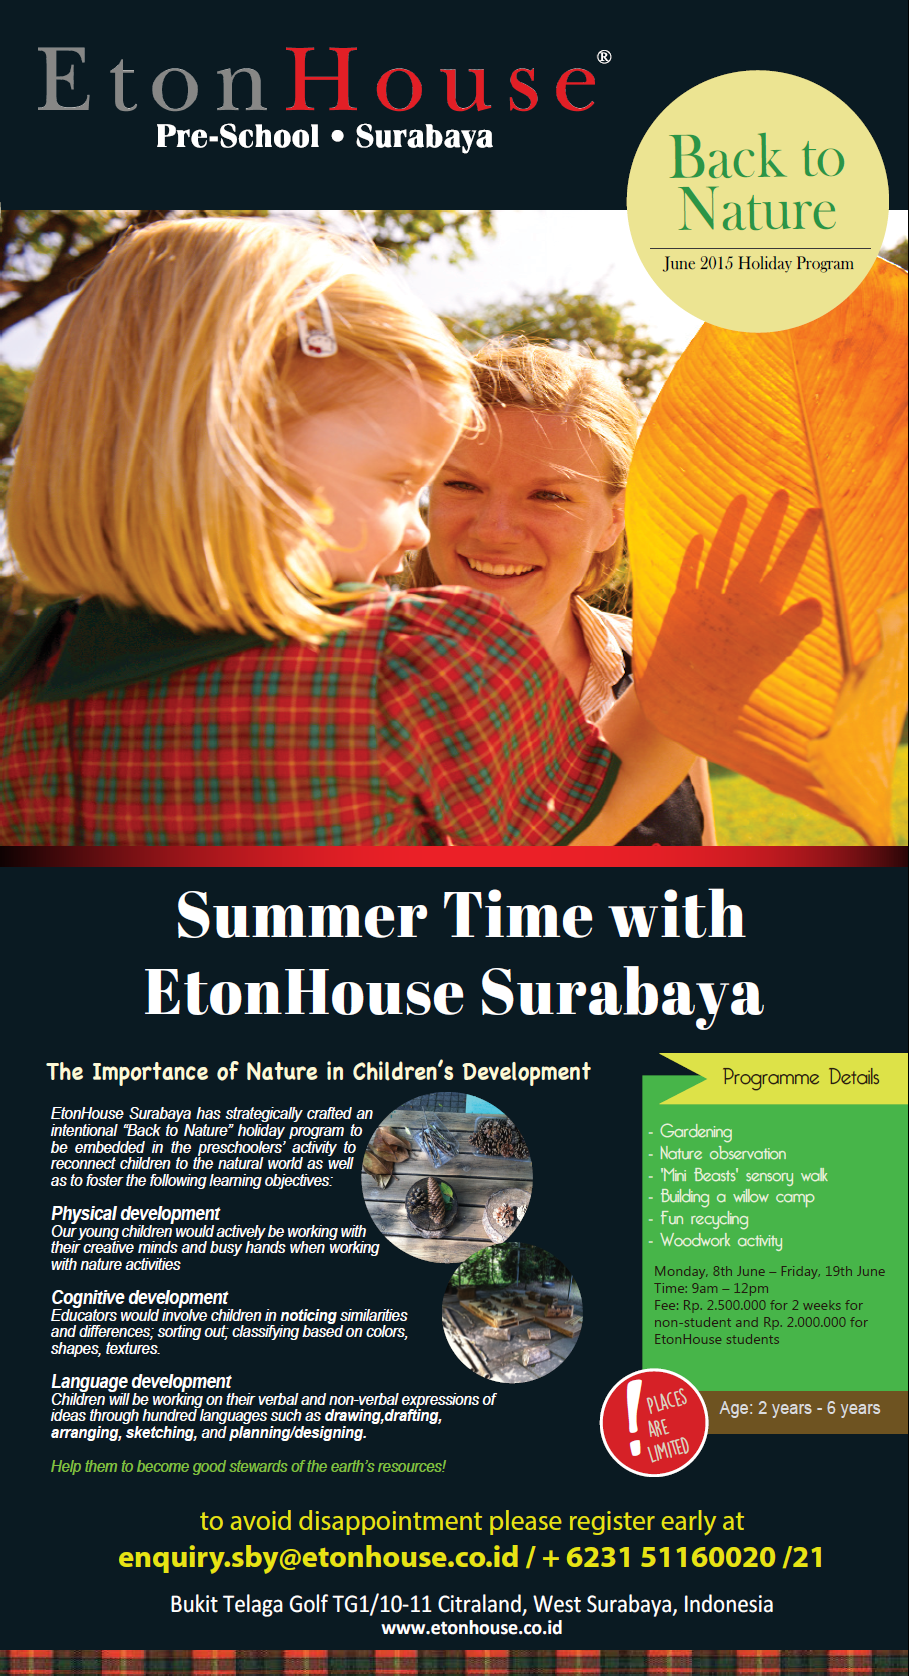 Back to Nature- June 2015 Holiday Program